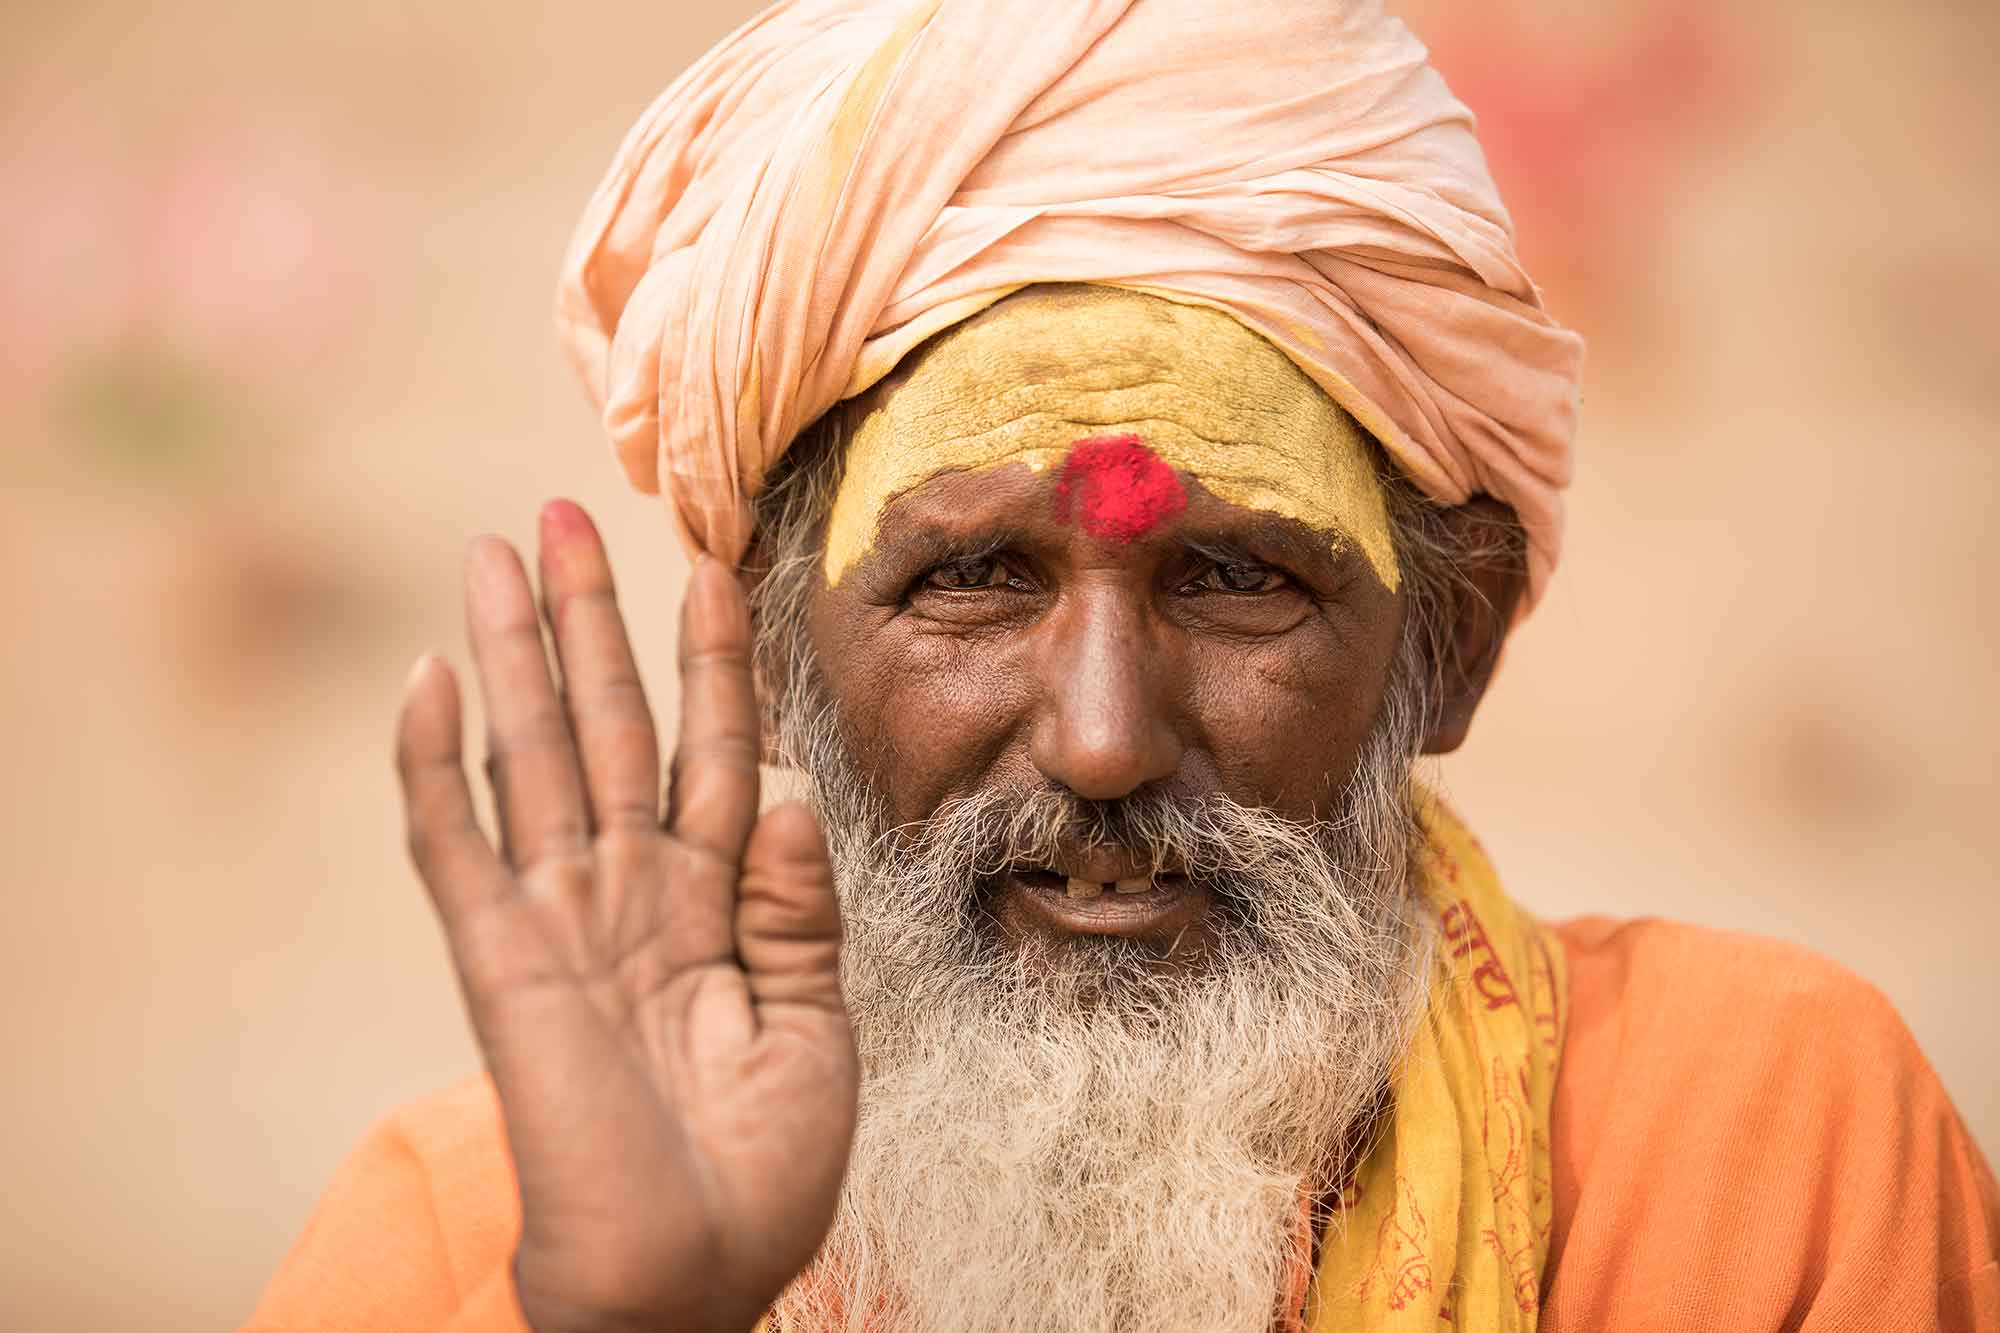 sadhu-portrait-varanasi-india-4